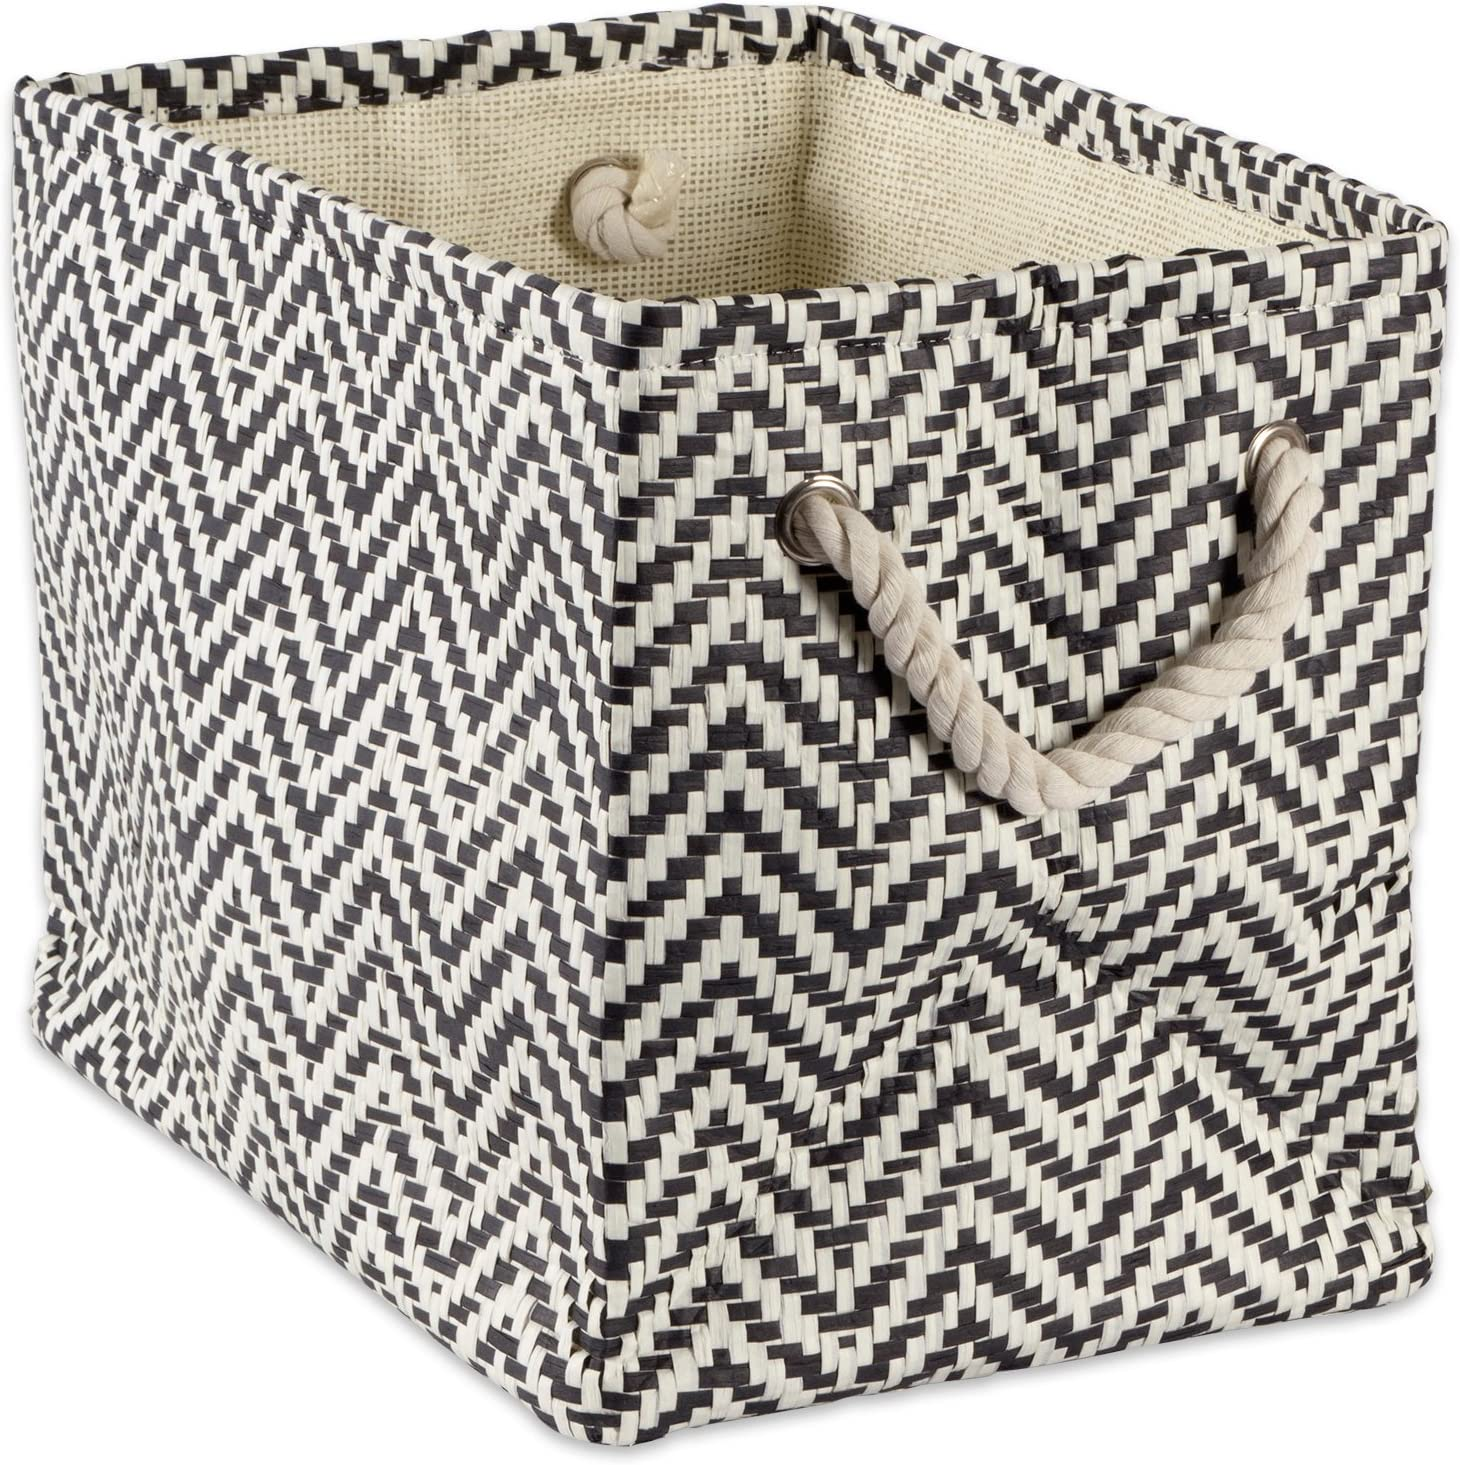 """DII Woven Paper Storage Basket or Bin, Collapsible & Convenient Home Organization Solution for Office, Bedroom, Closet, Toys, & Laundry (Large – 17x12x12""""), Black Chevron"""